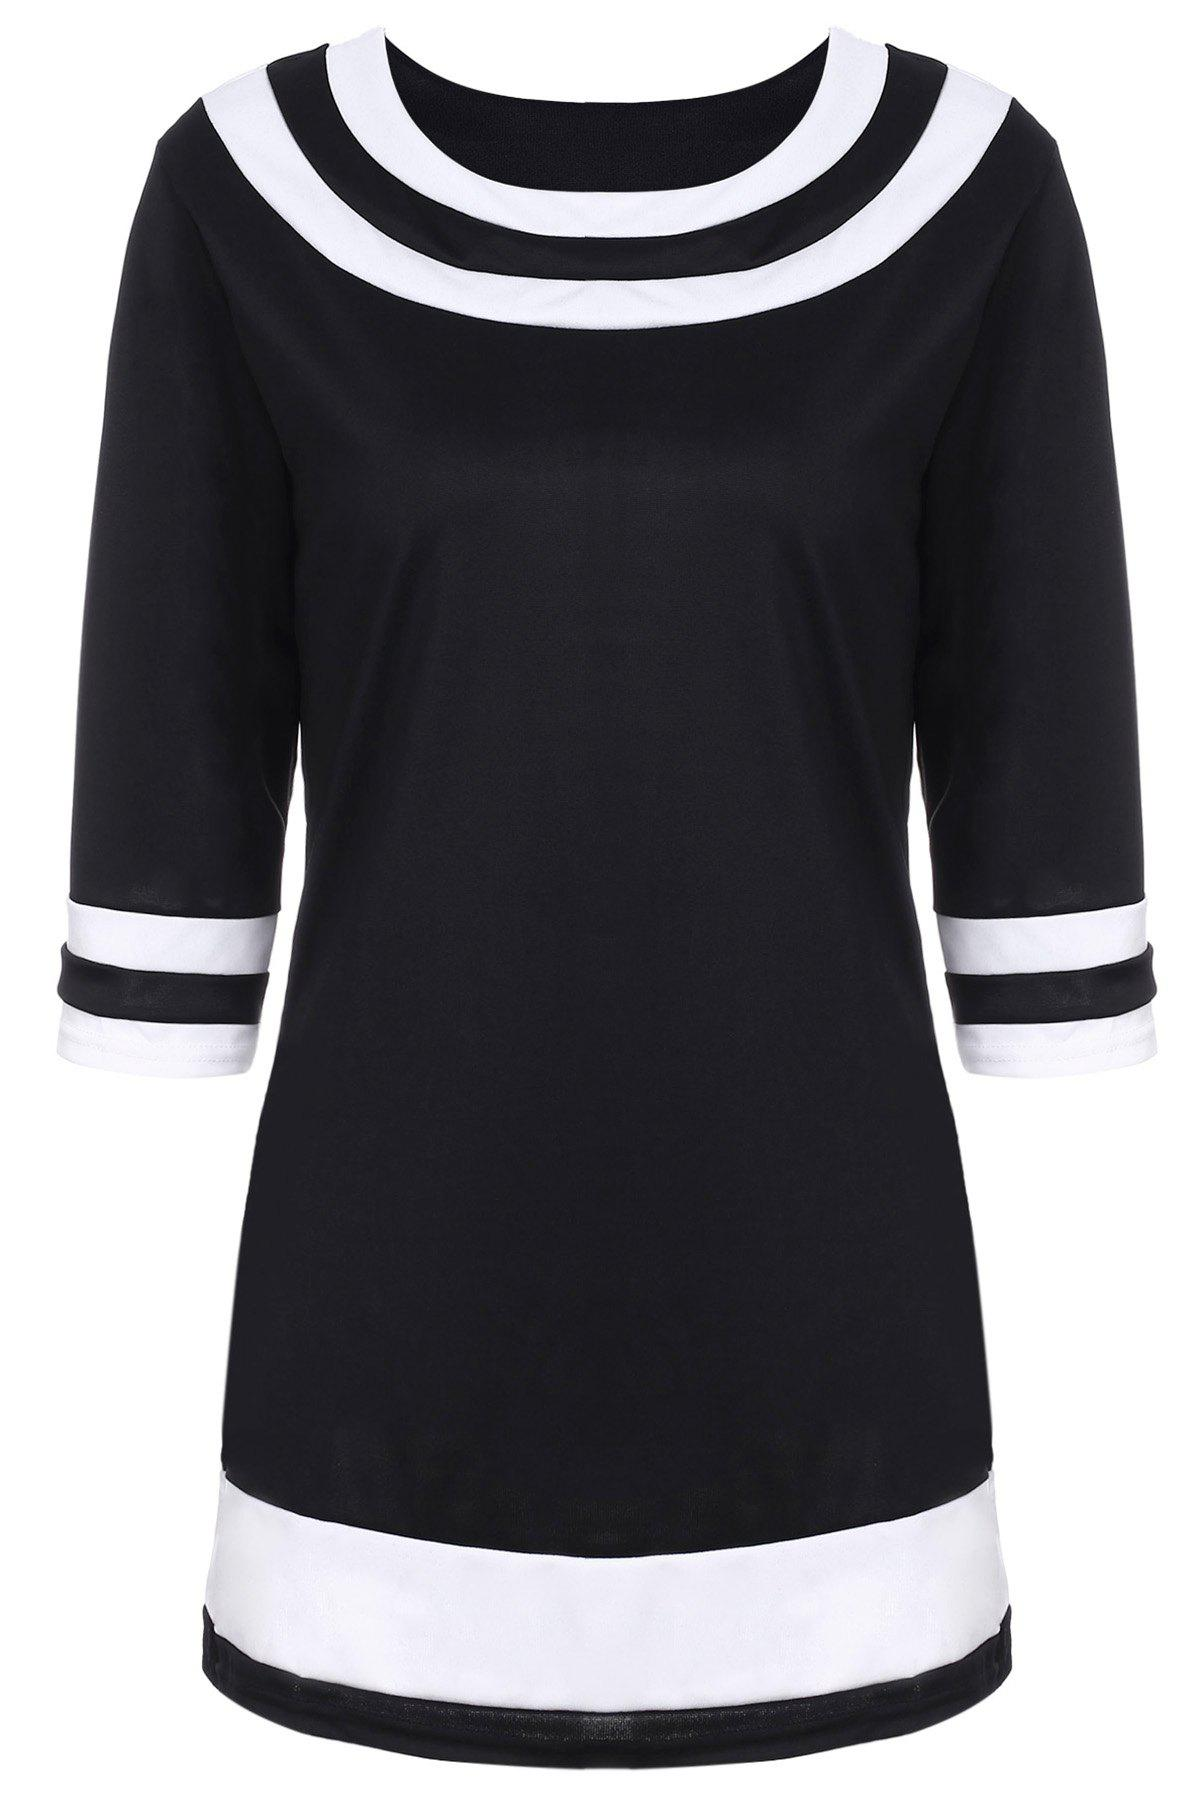 Brief Color Spliced Round Collar 3/4 Sleeve Dress For Women - BLACK XL